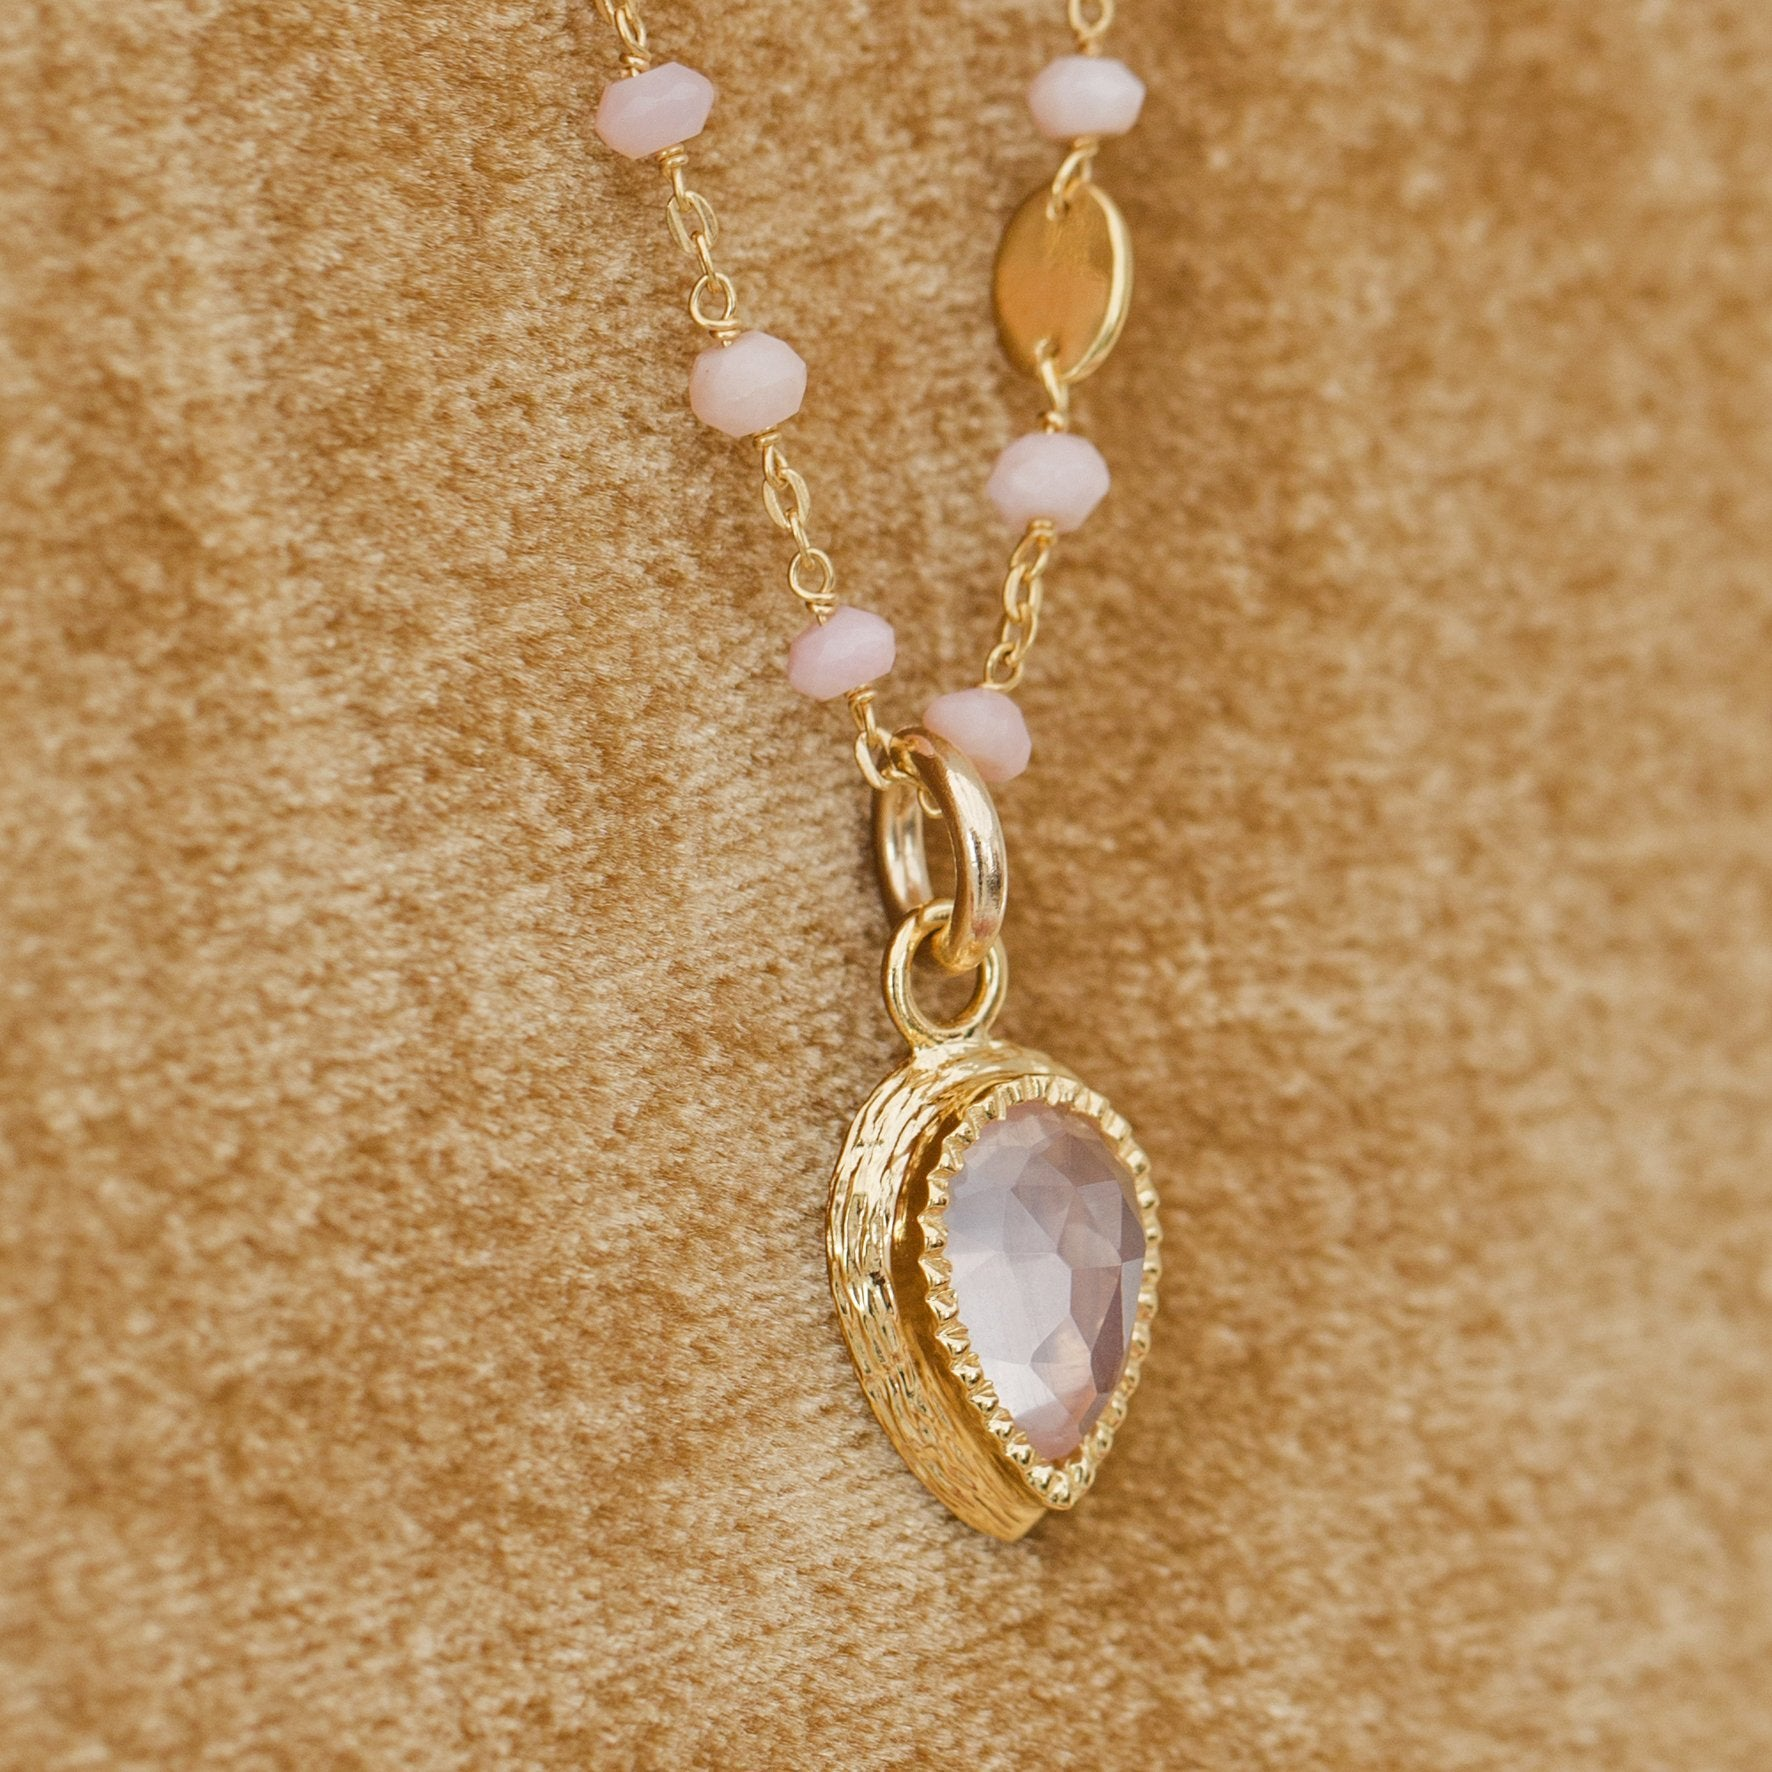 ADORE ICON - PINK QUARTZ & GOLD - SO PRETTY CARA COTTER